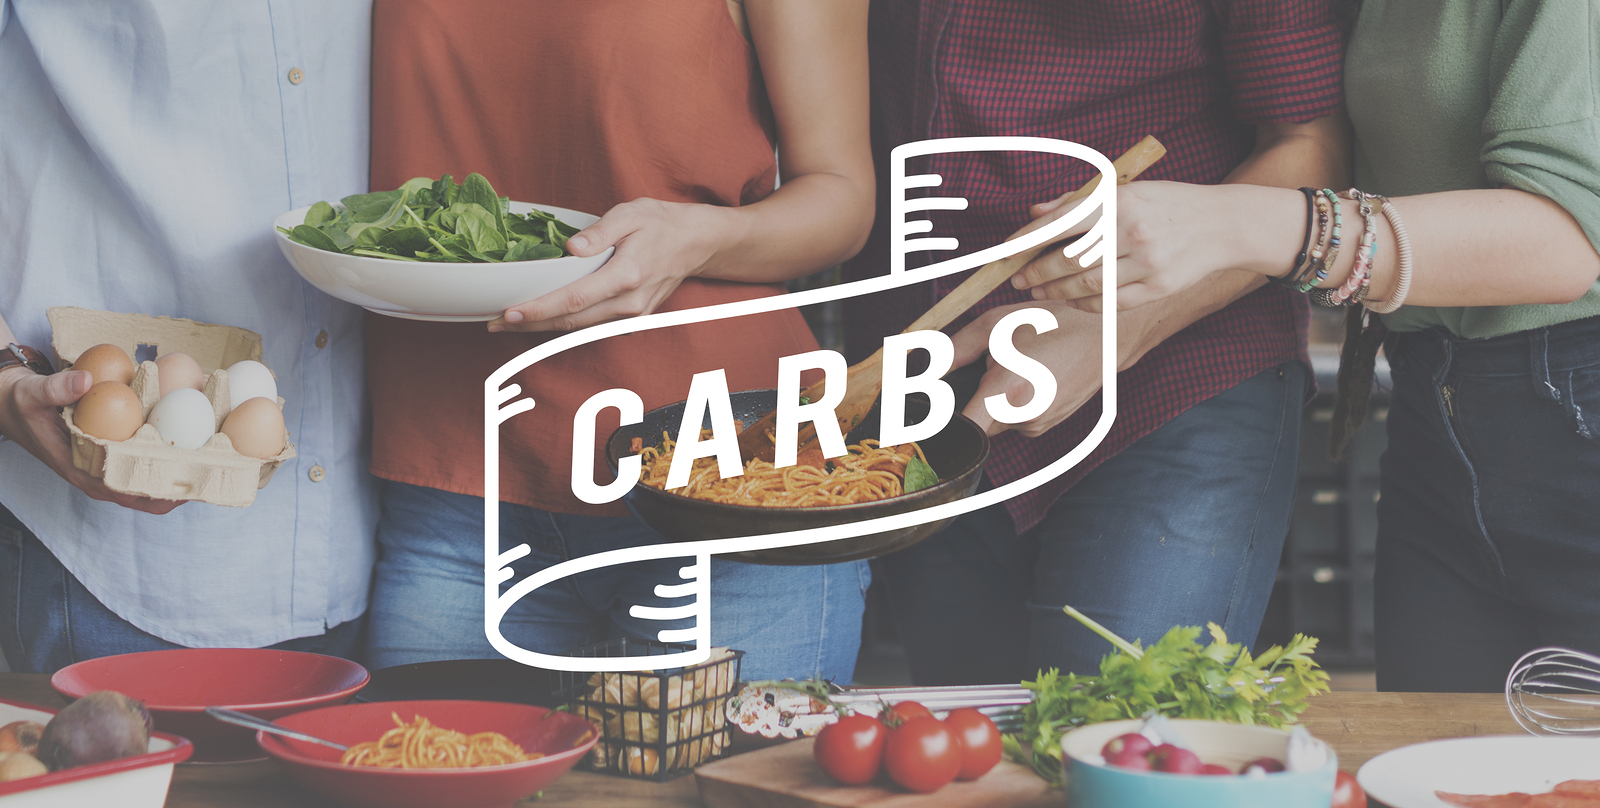 My Take-Away on Carb Cycling